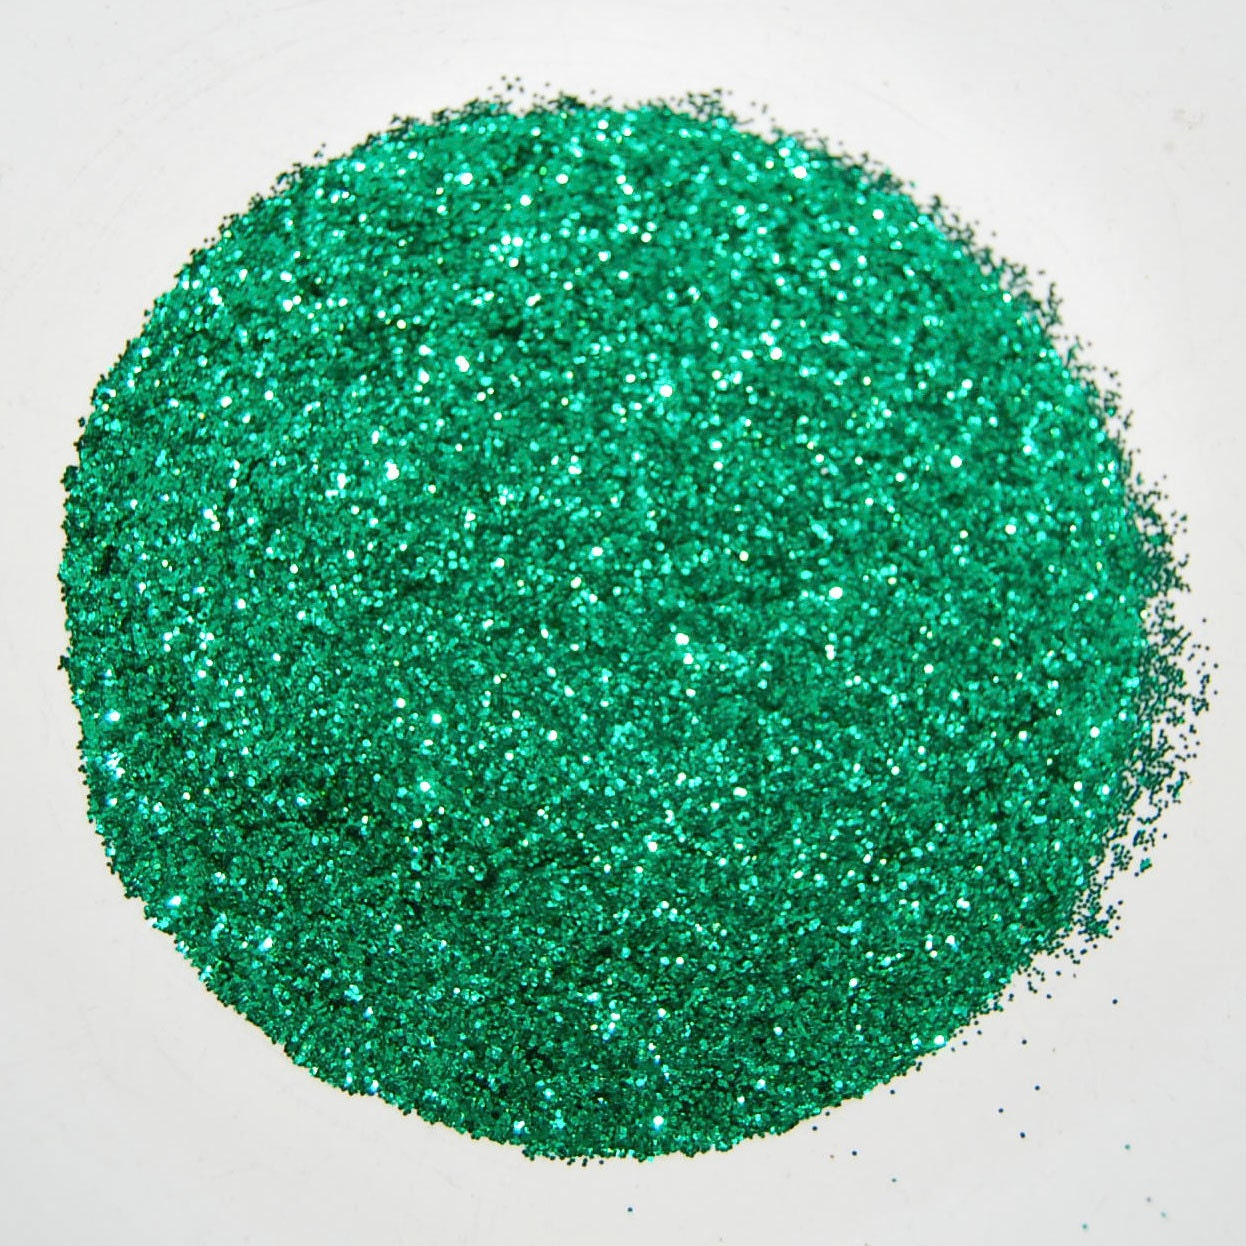 Emerald Green SOLVENT RESISTANT GLITTER 0.015 by